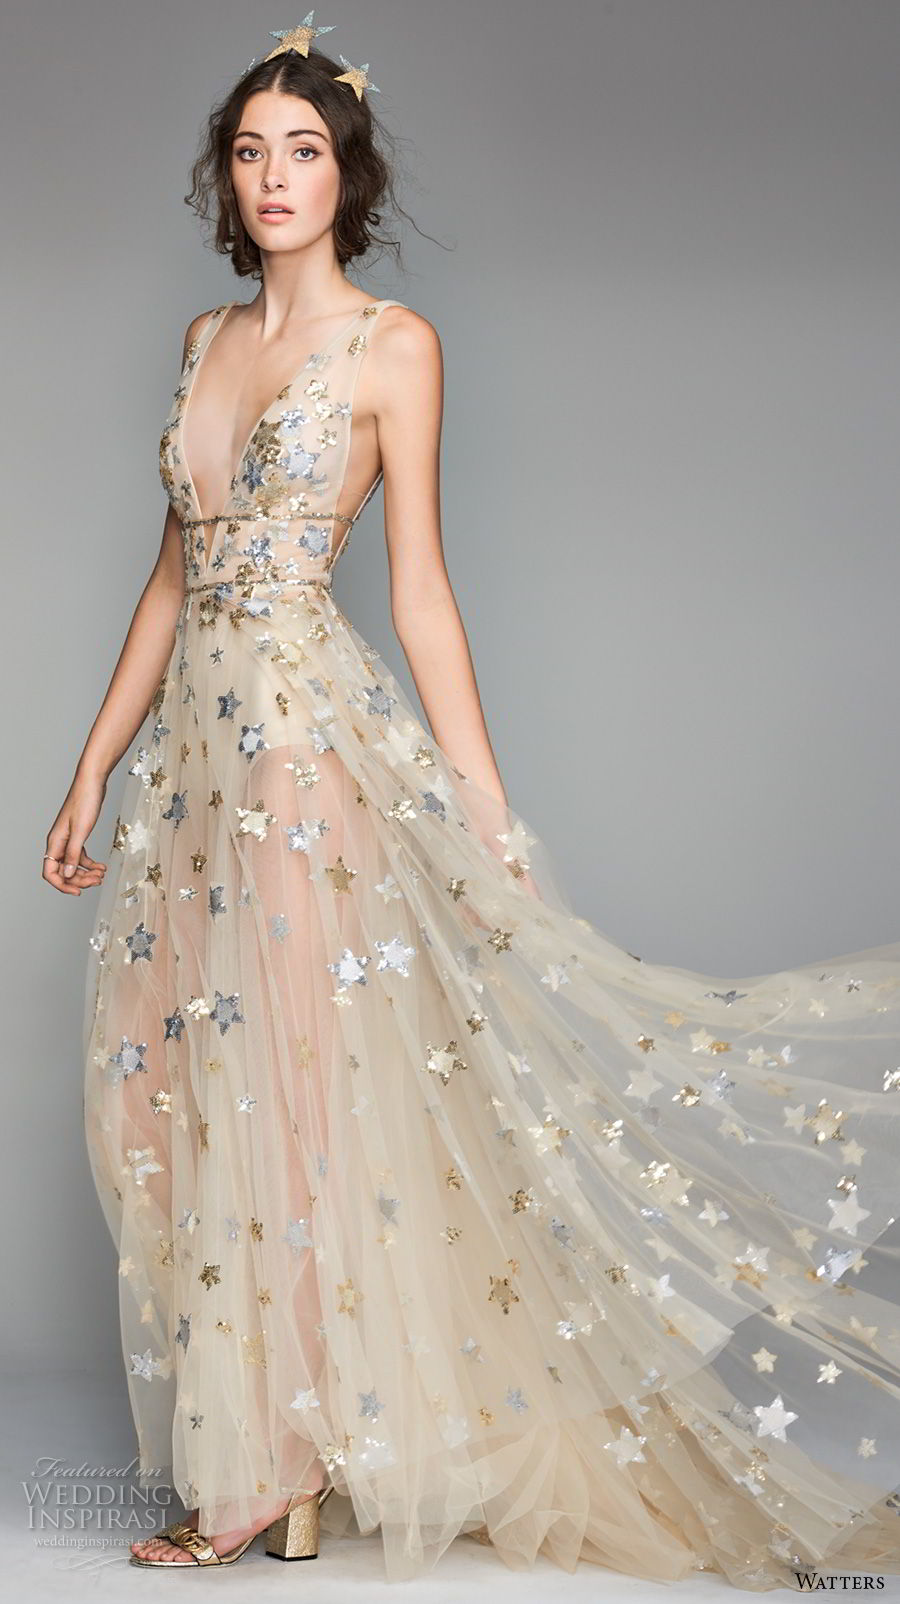 willow by watters spring 2018 sleeveless deep v neck full embellishment romantic gold soft a line wedding dress low v back sweep train (5) mv